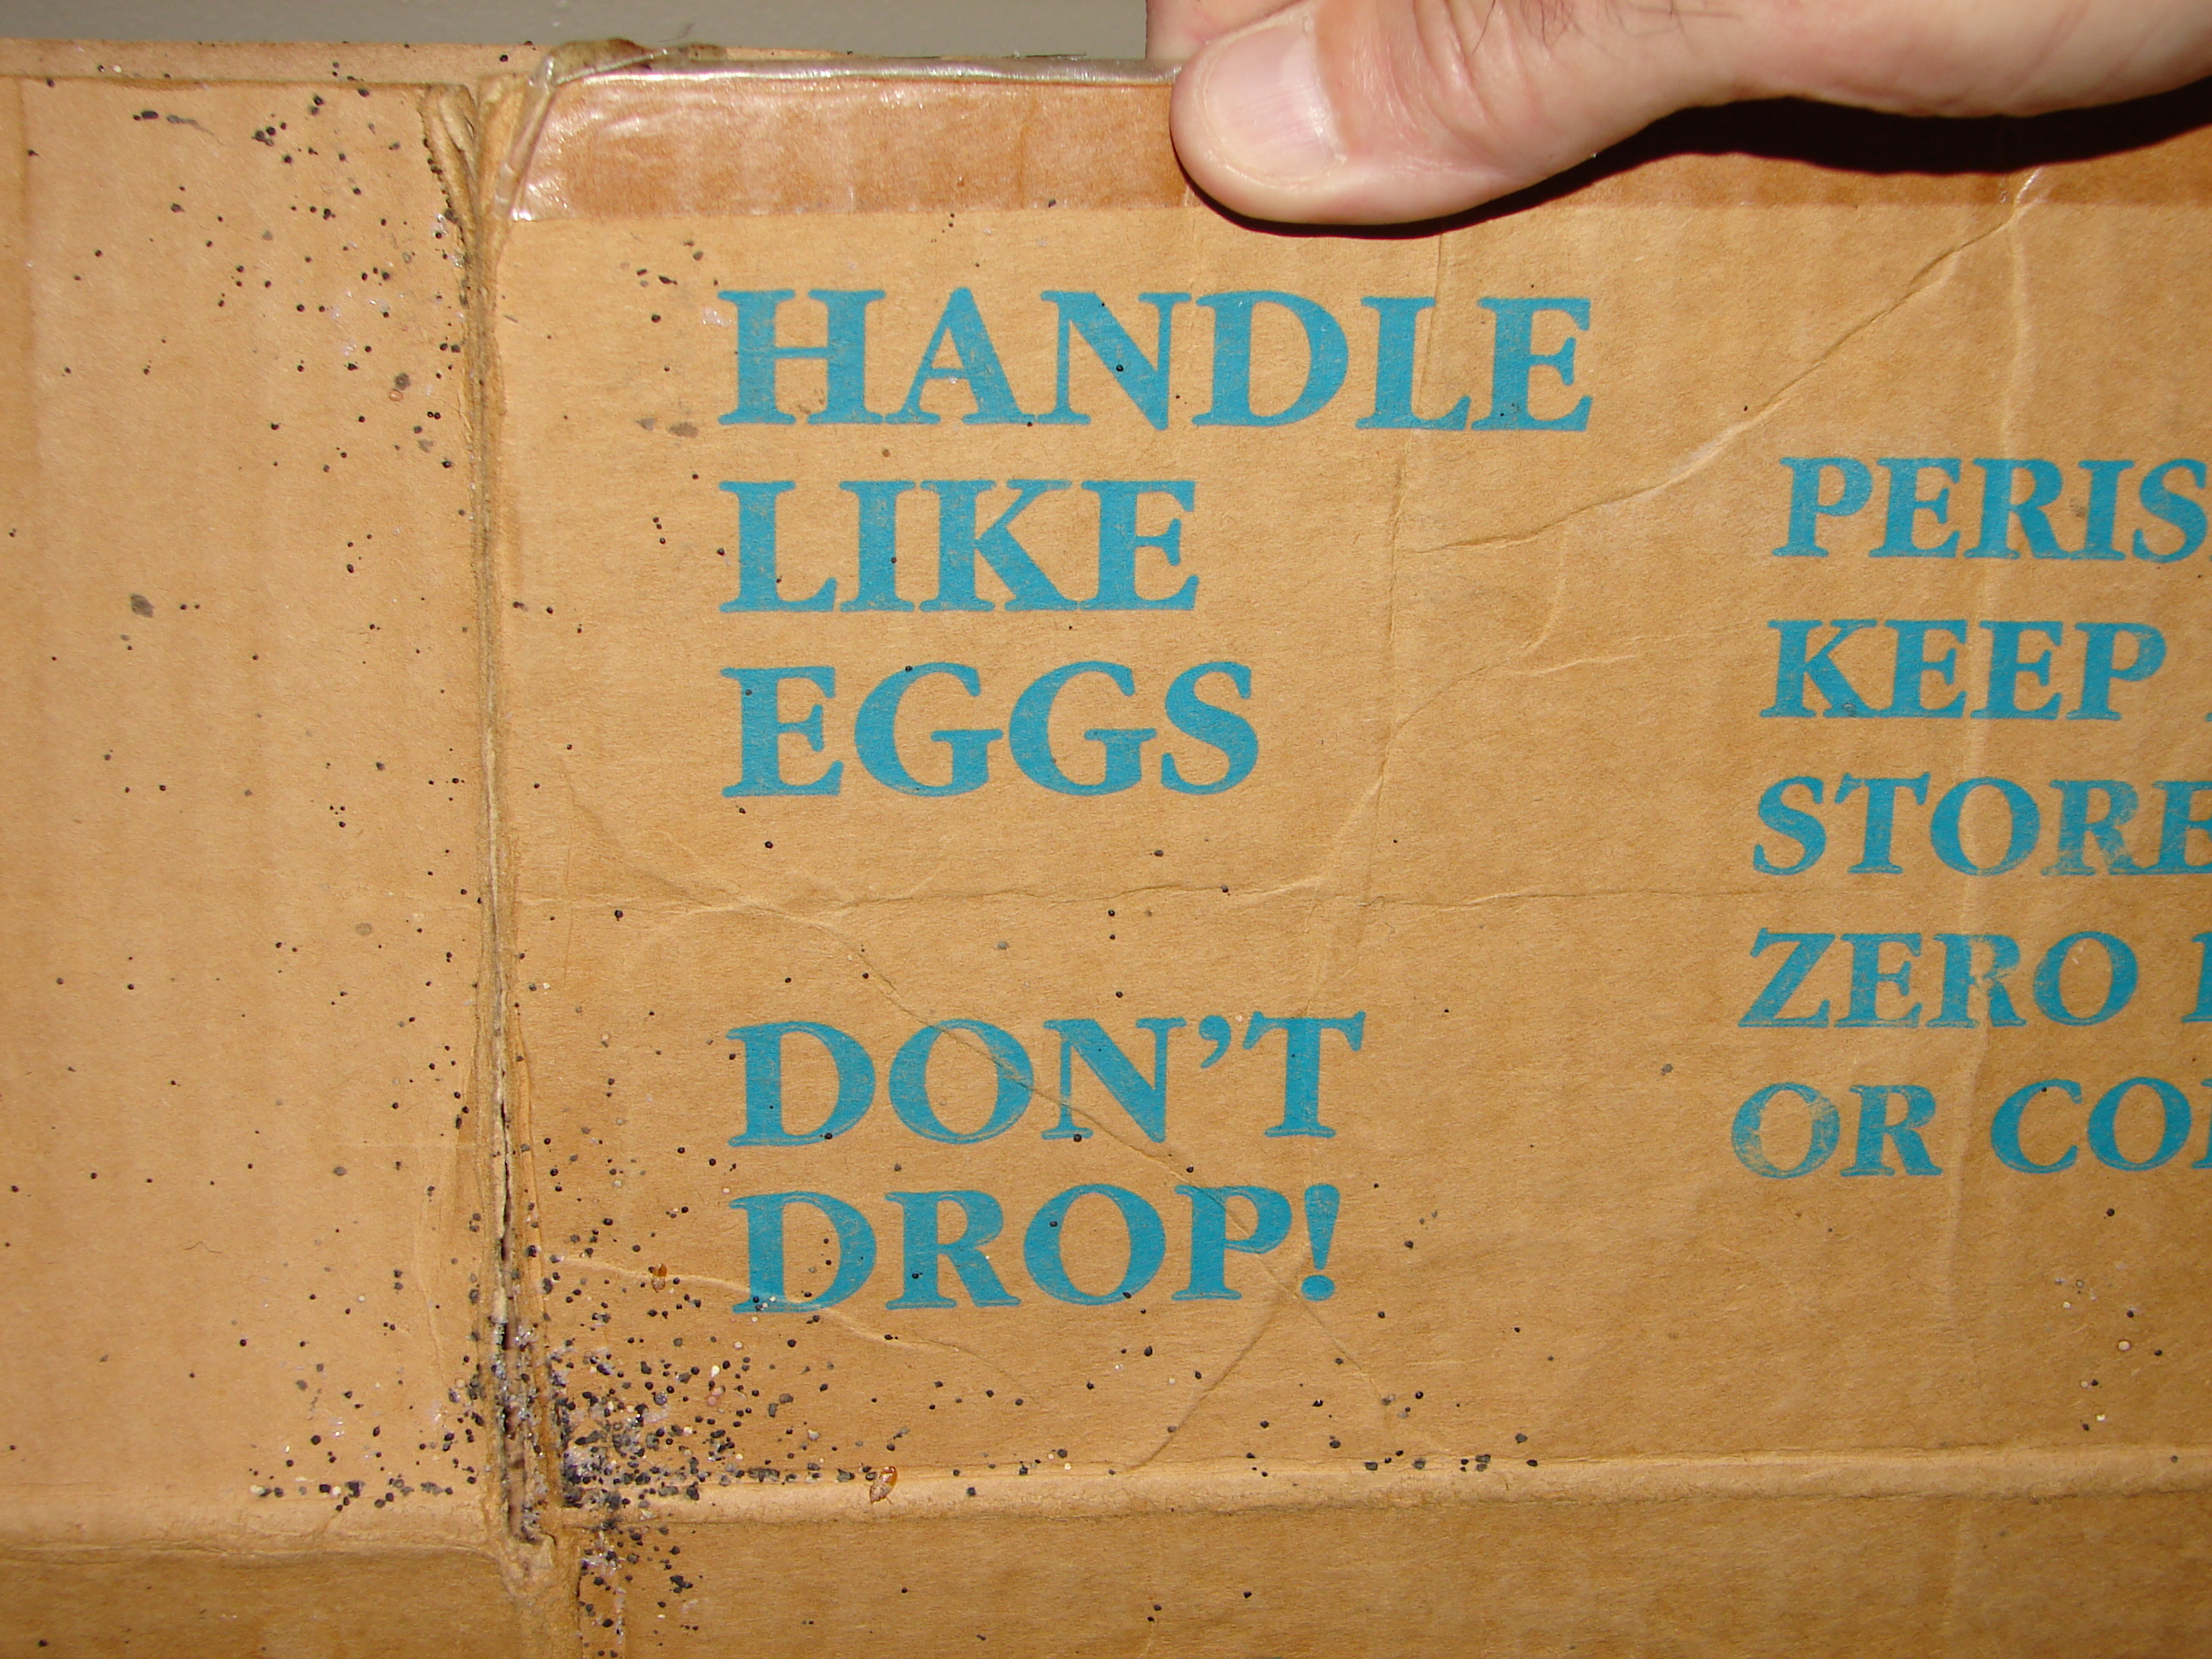 bed bug eggs and feces on cardboard box & bed bug eggs and feces on cardboard box | Bed Bugs Aboutintivar.Com